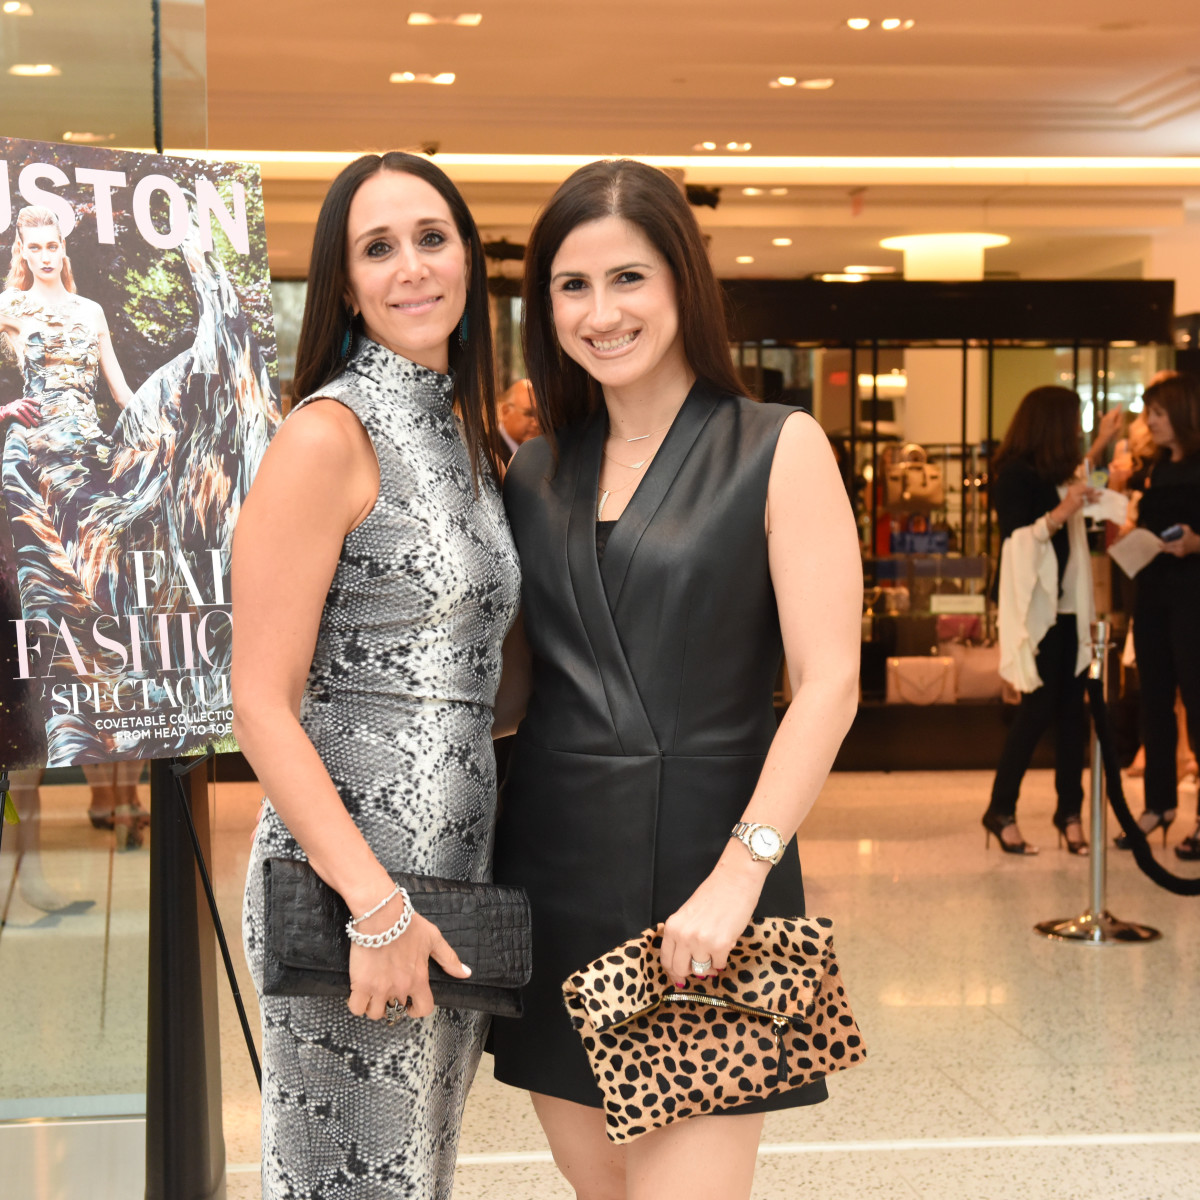 News, Shelby, Fresh Faces of Fashion, Sept. 2015, Amy Zadok, Lisa Zadok